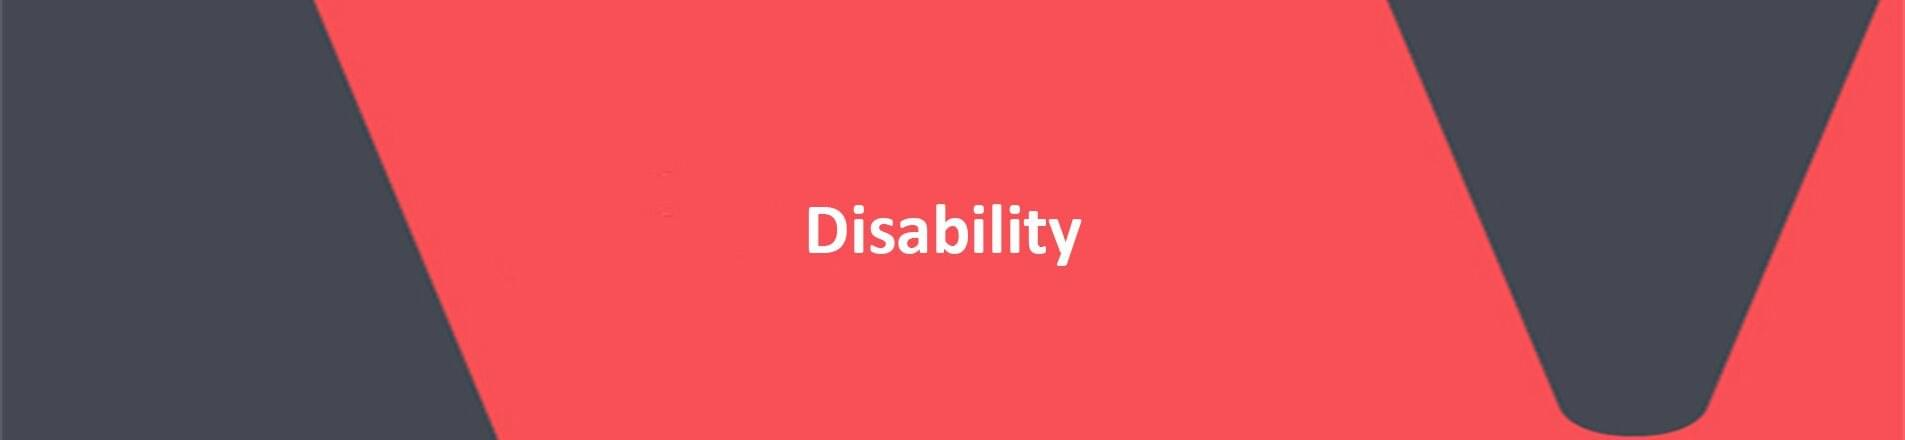 Disability.